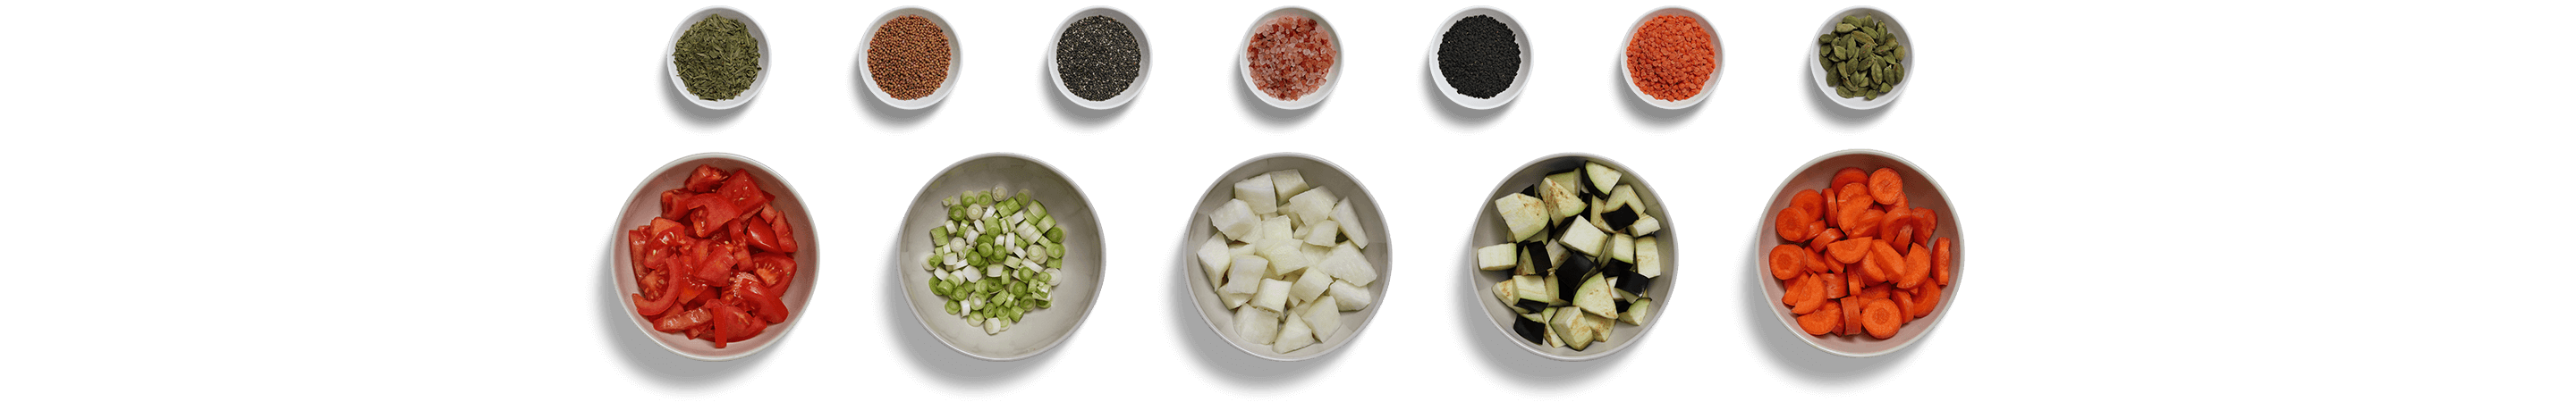 Mise en place arrangement of prepared food ingredients